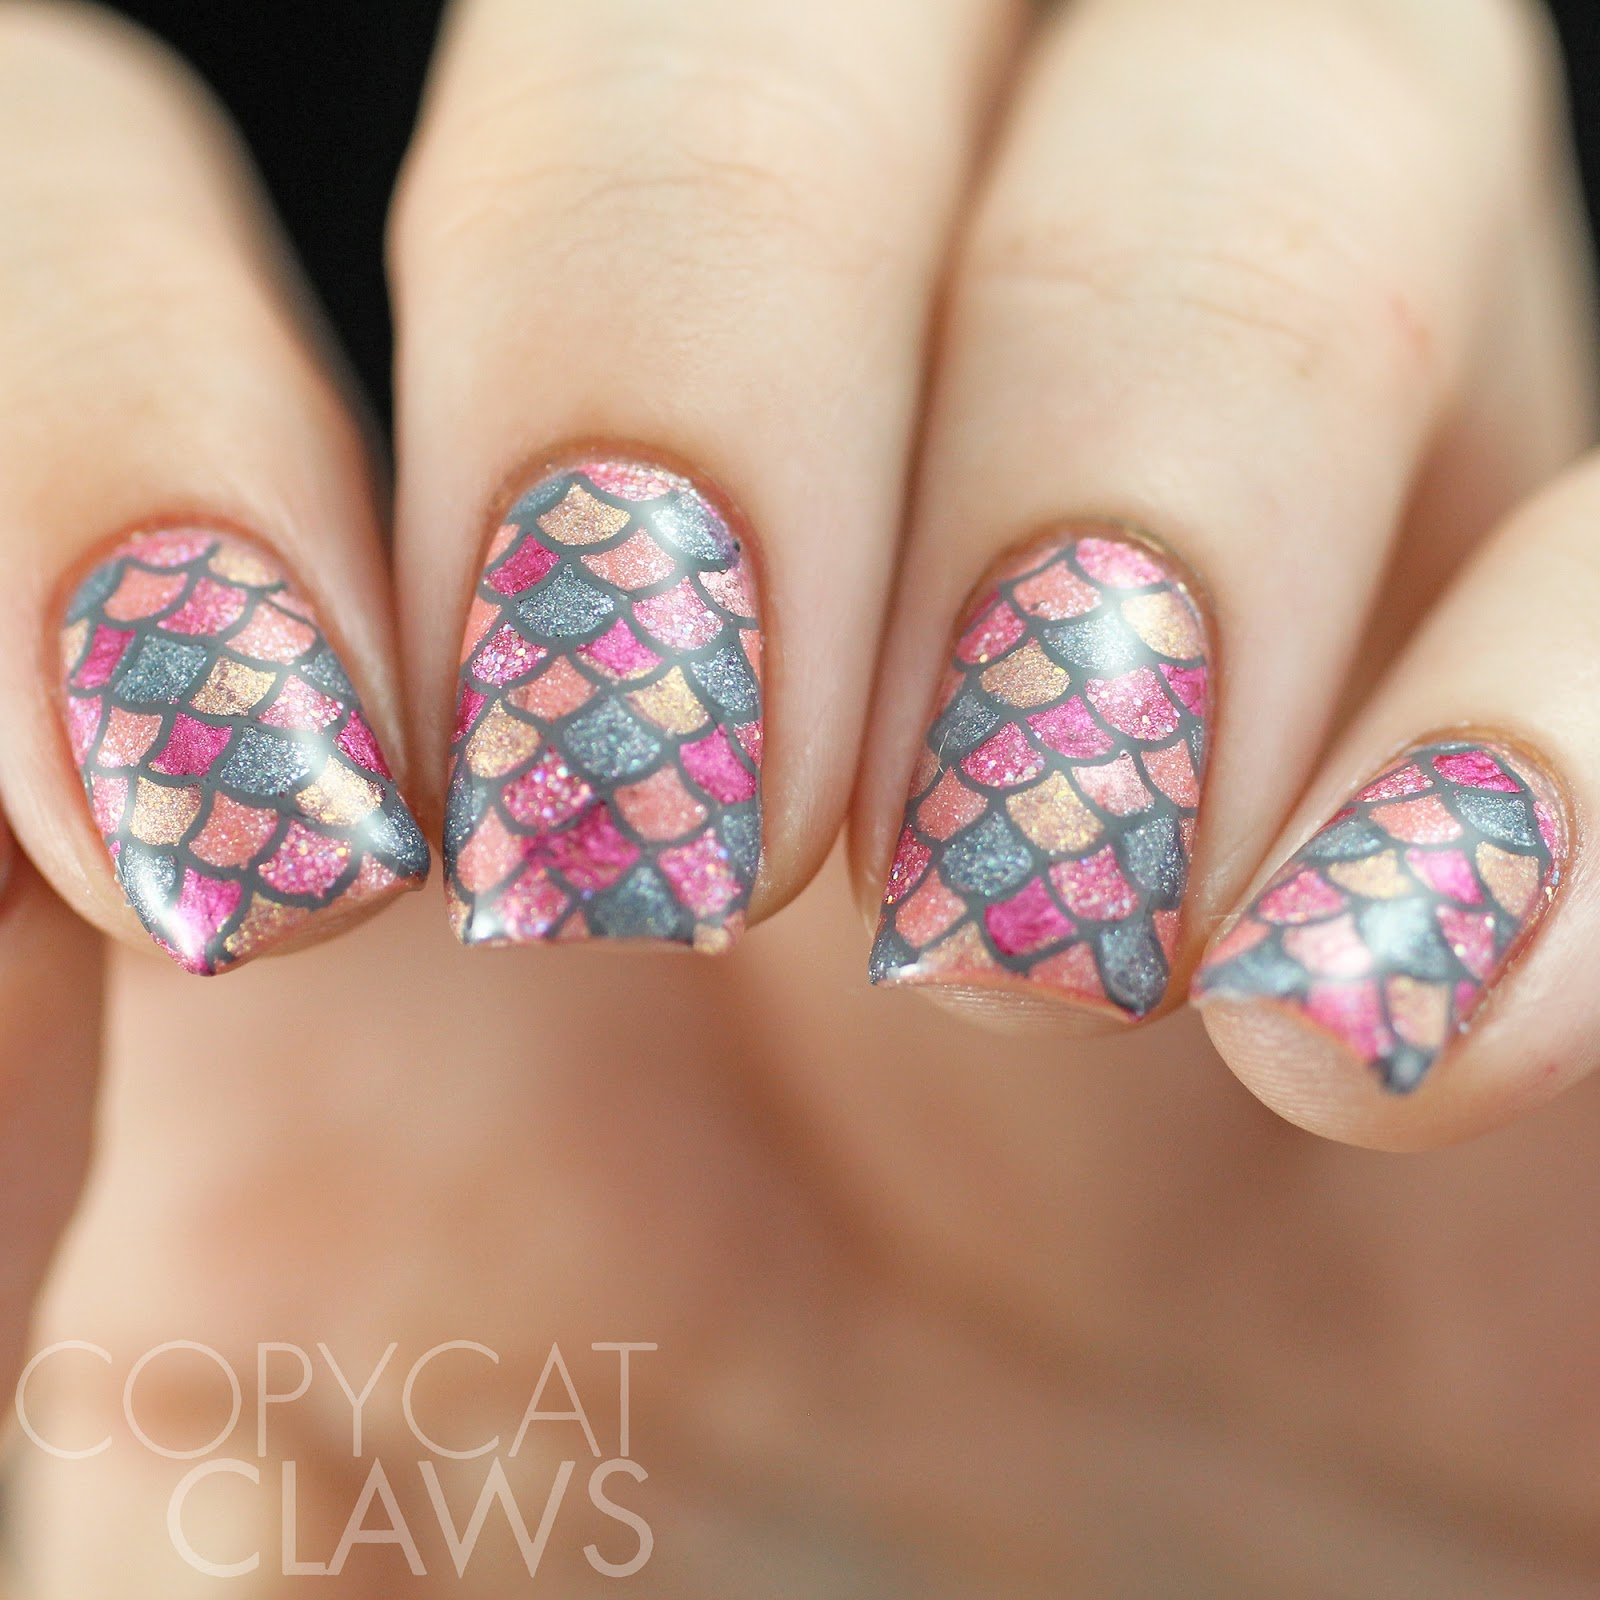 Copycat Claws 40 Great Nail Art Ideas Grey Color